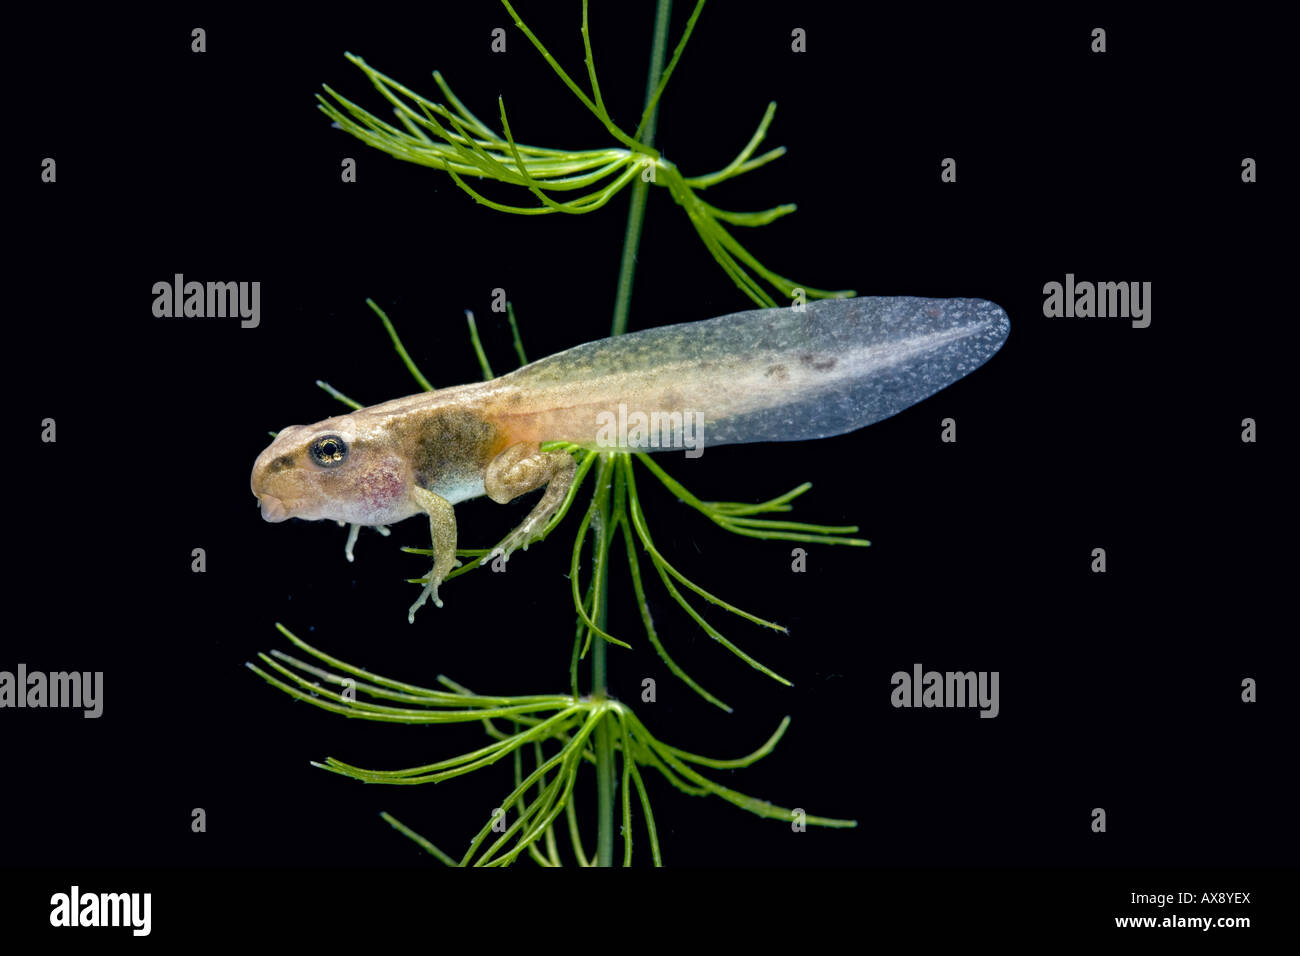 Common frog Rana temporaria tadpole with 4 legs - Stock Image